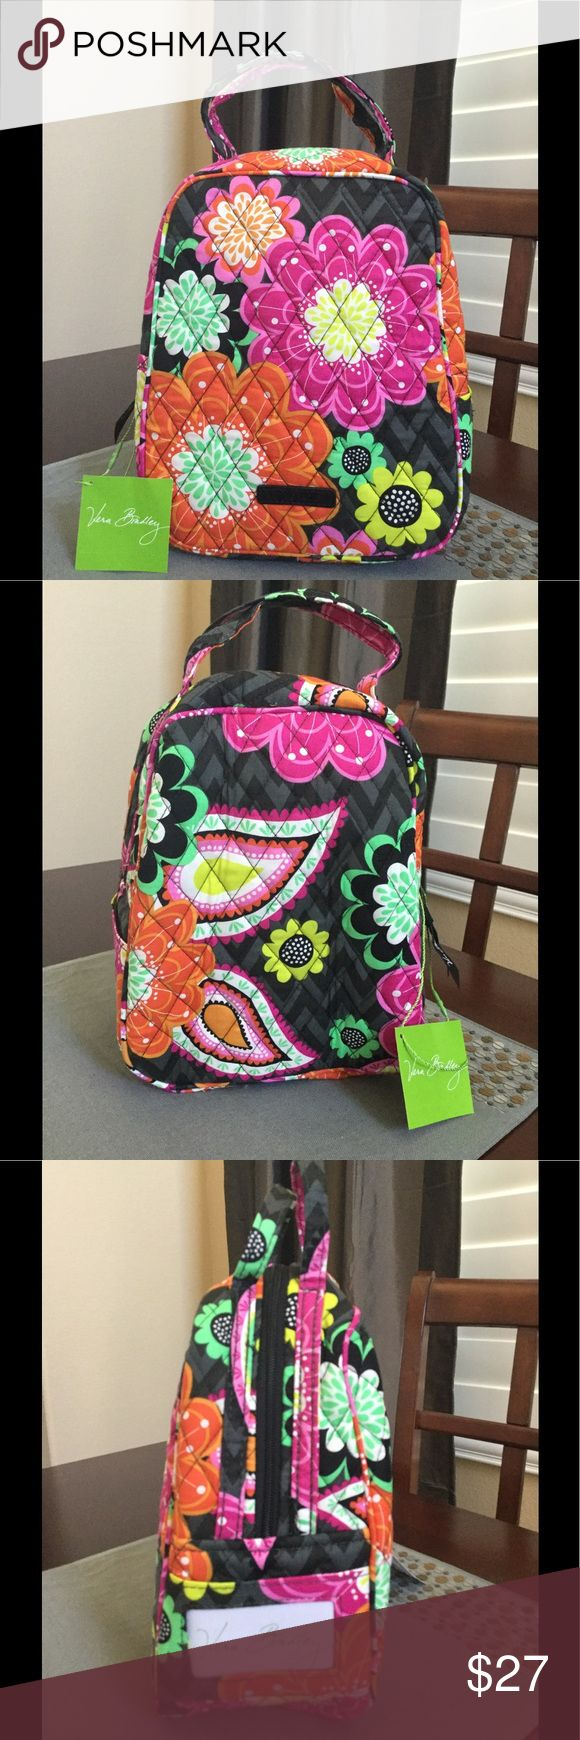 "NWT VERA BRADLEY LUNCH BAG NWT Vera Bradley Lunch Bunch  7 "" W x 9"" H x 4 "" D with 3"" handle drop  Ziggy zinnia Pattern  Outside ID pocket Smoke/pet free home Vera Bradley Bags Cosmetic Bags & Cases"